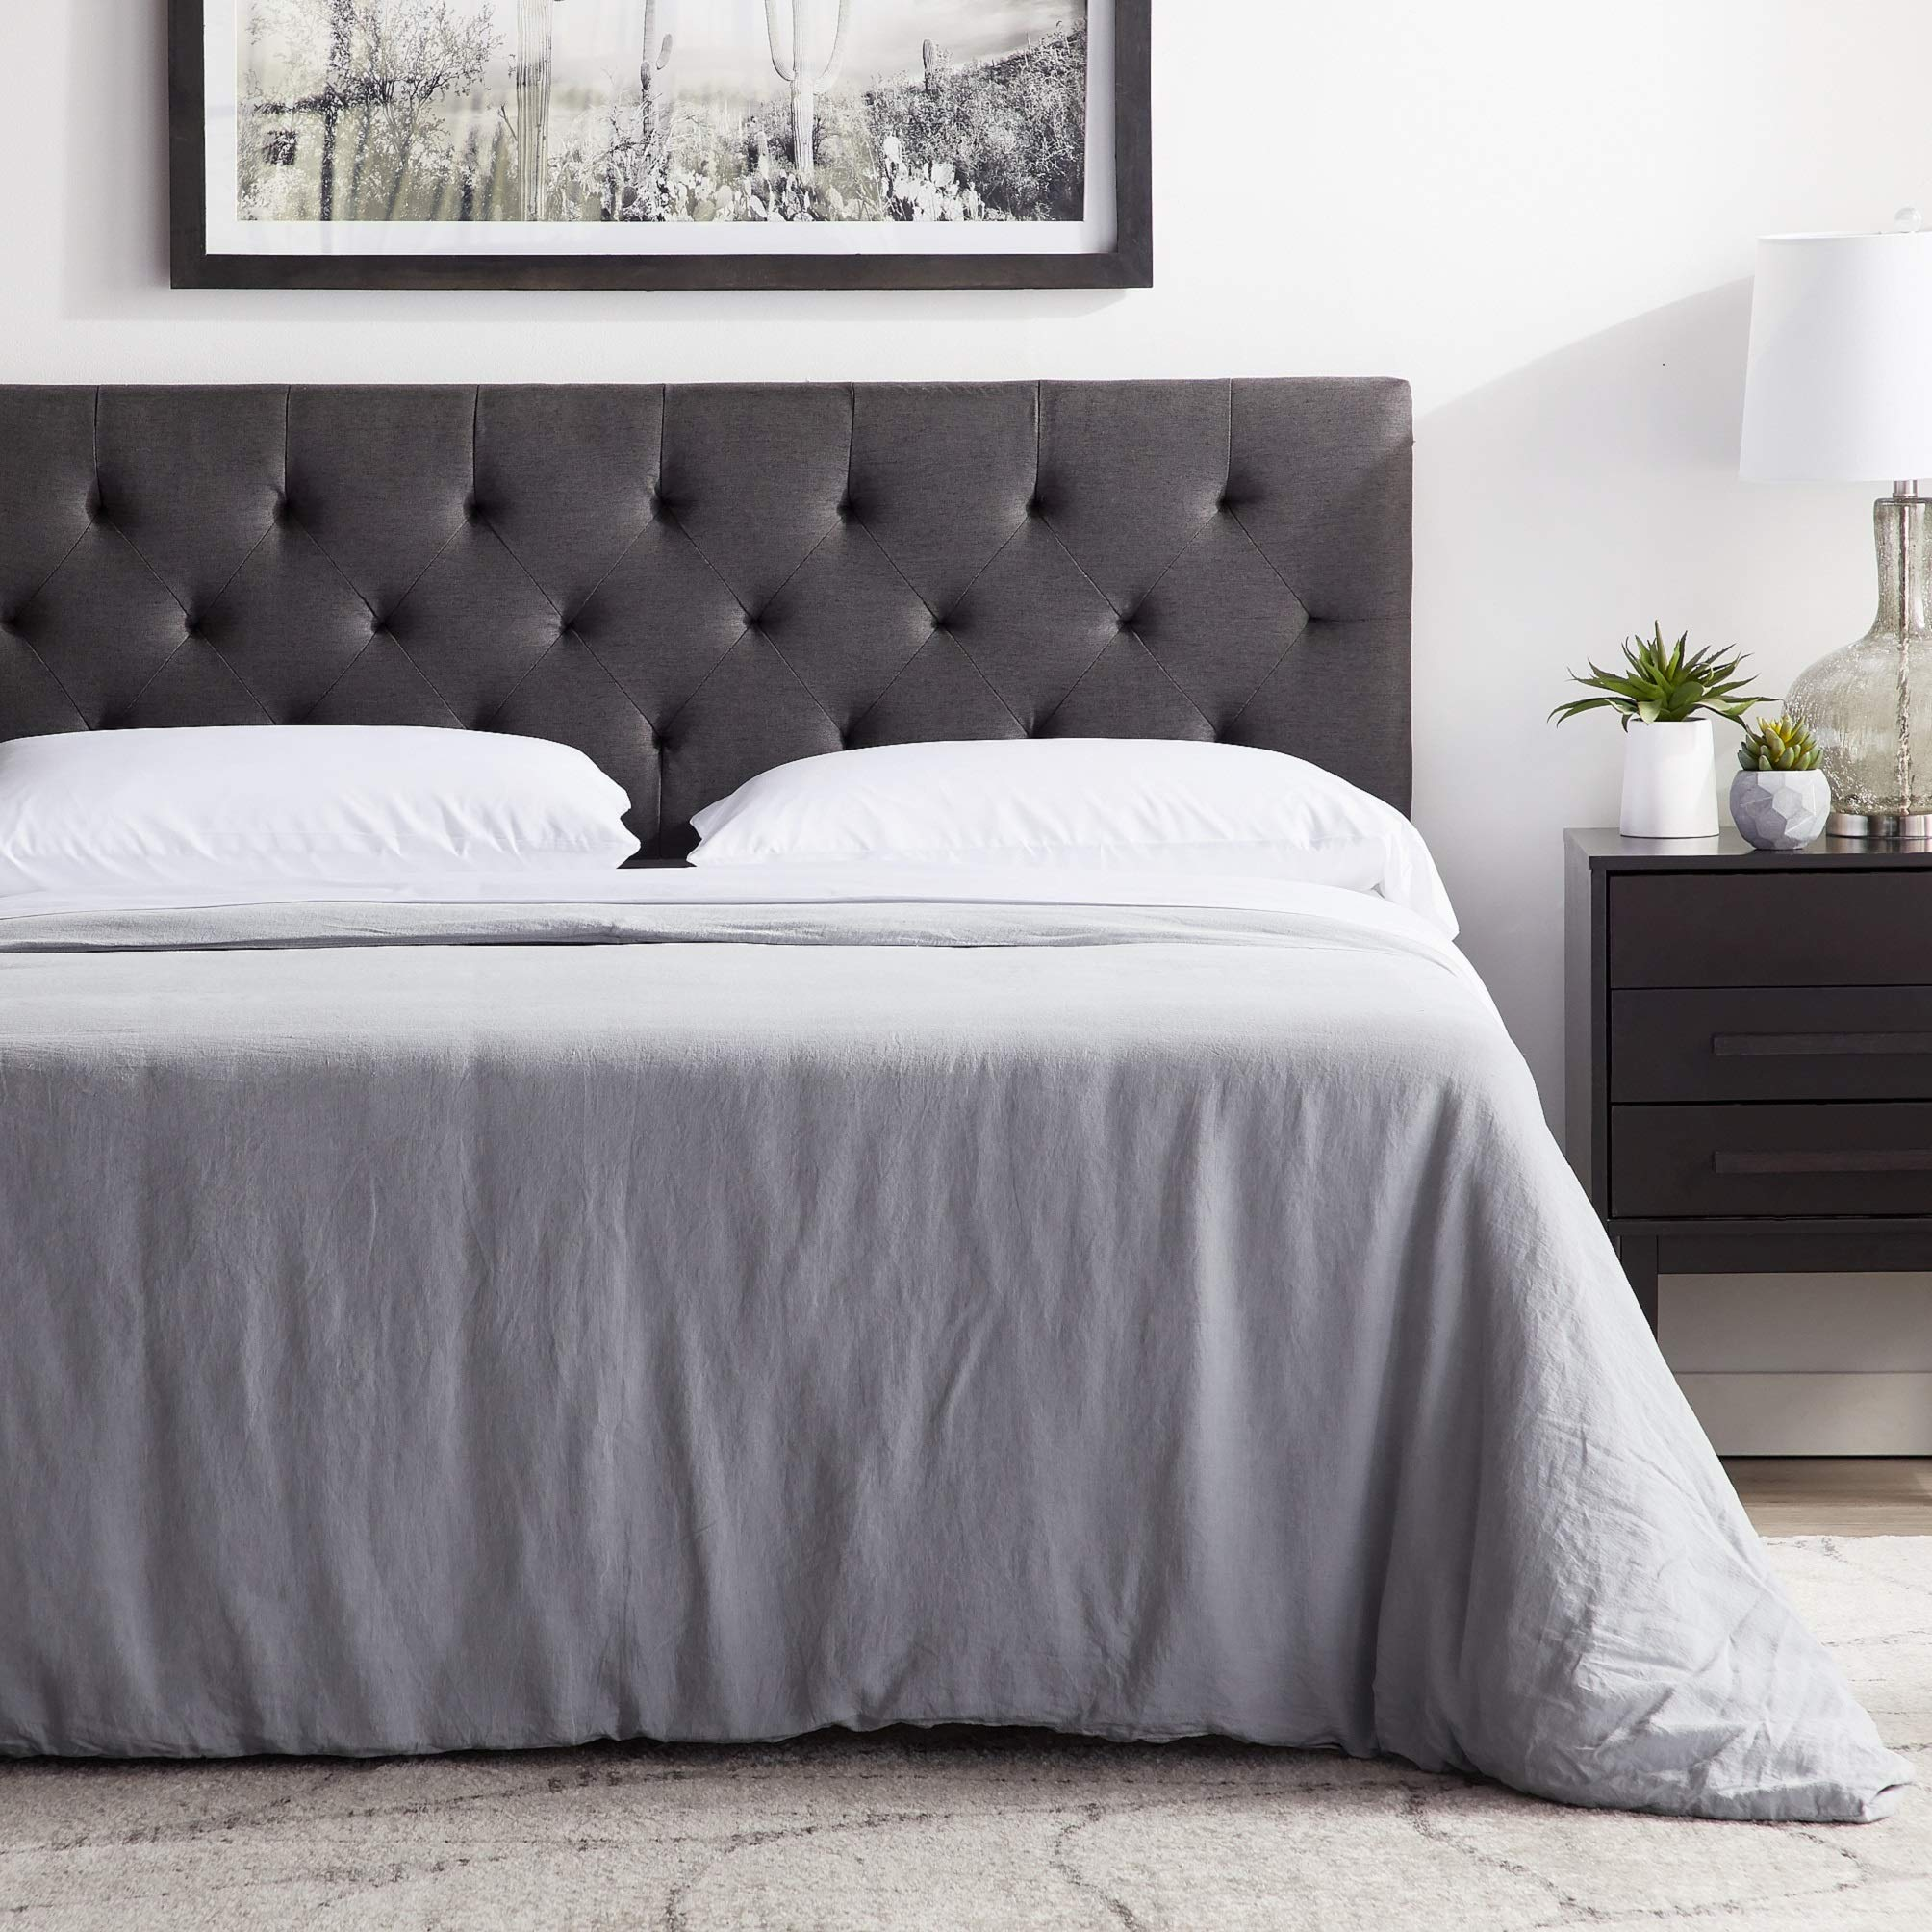 LUCID Mid-Rise Upholstered Headboard - Adjustable Height from 34'' to 46'' - Queen - Charcoal